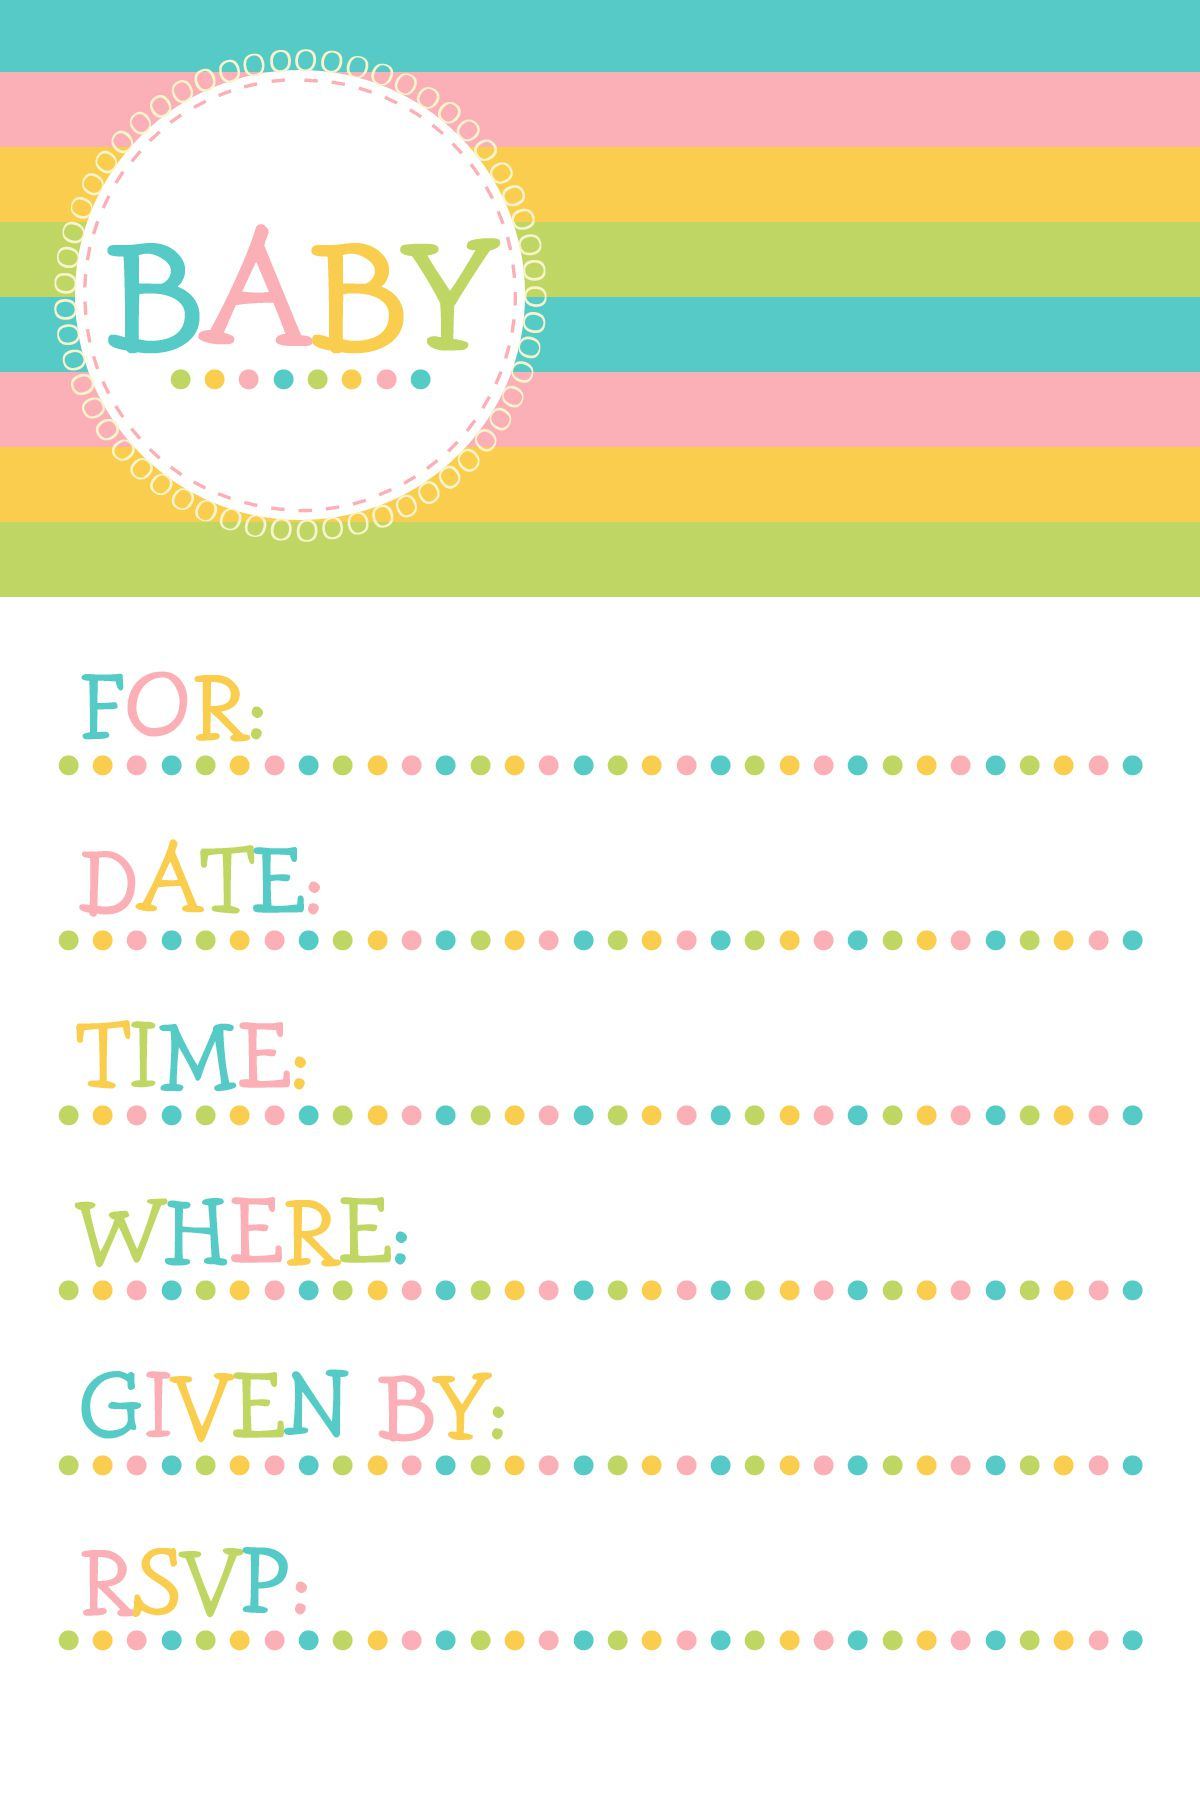 25 Adorable Free Printable Baby Shower Invitations - Free Printable Jungle Safari Baby Shower Invitations